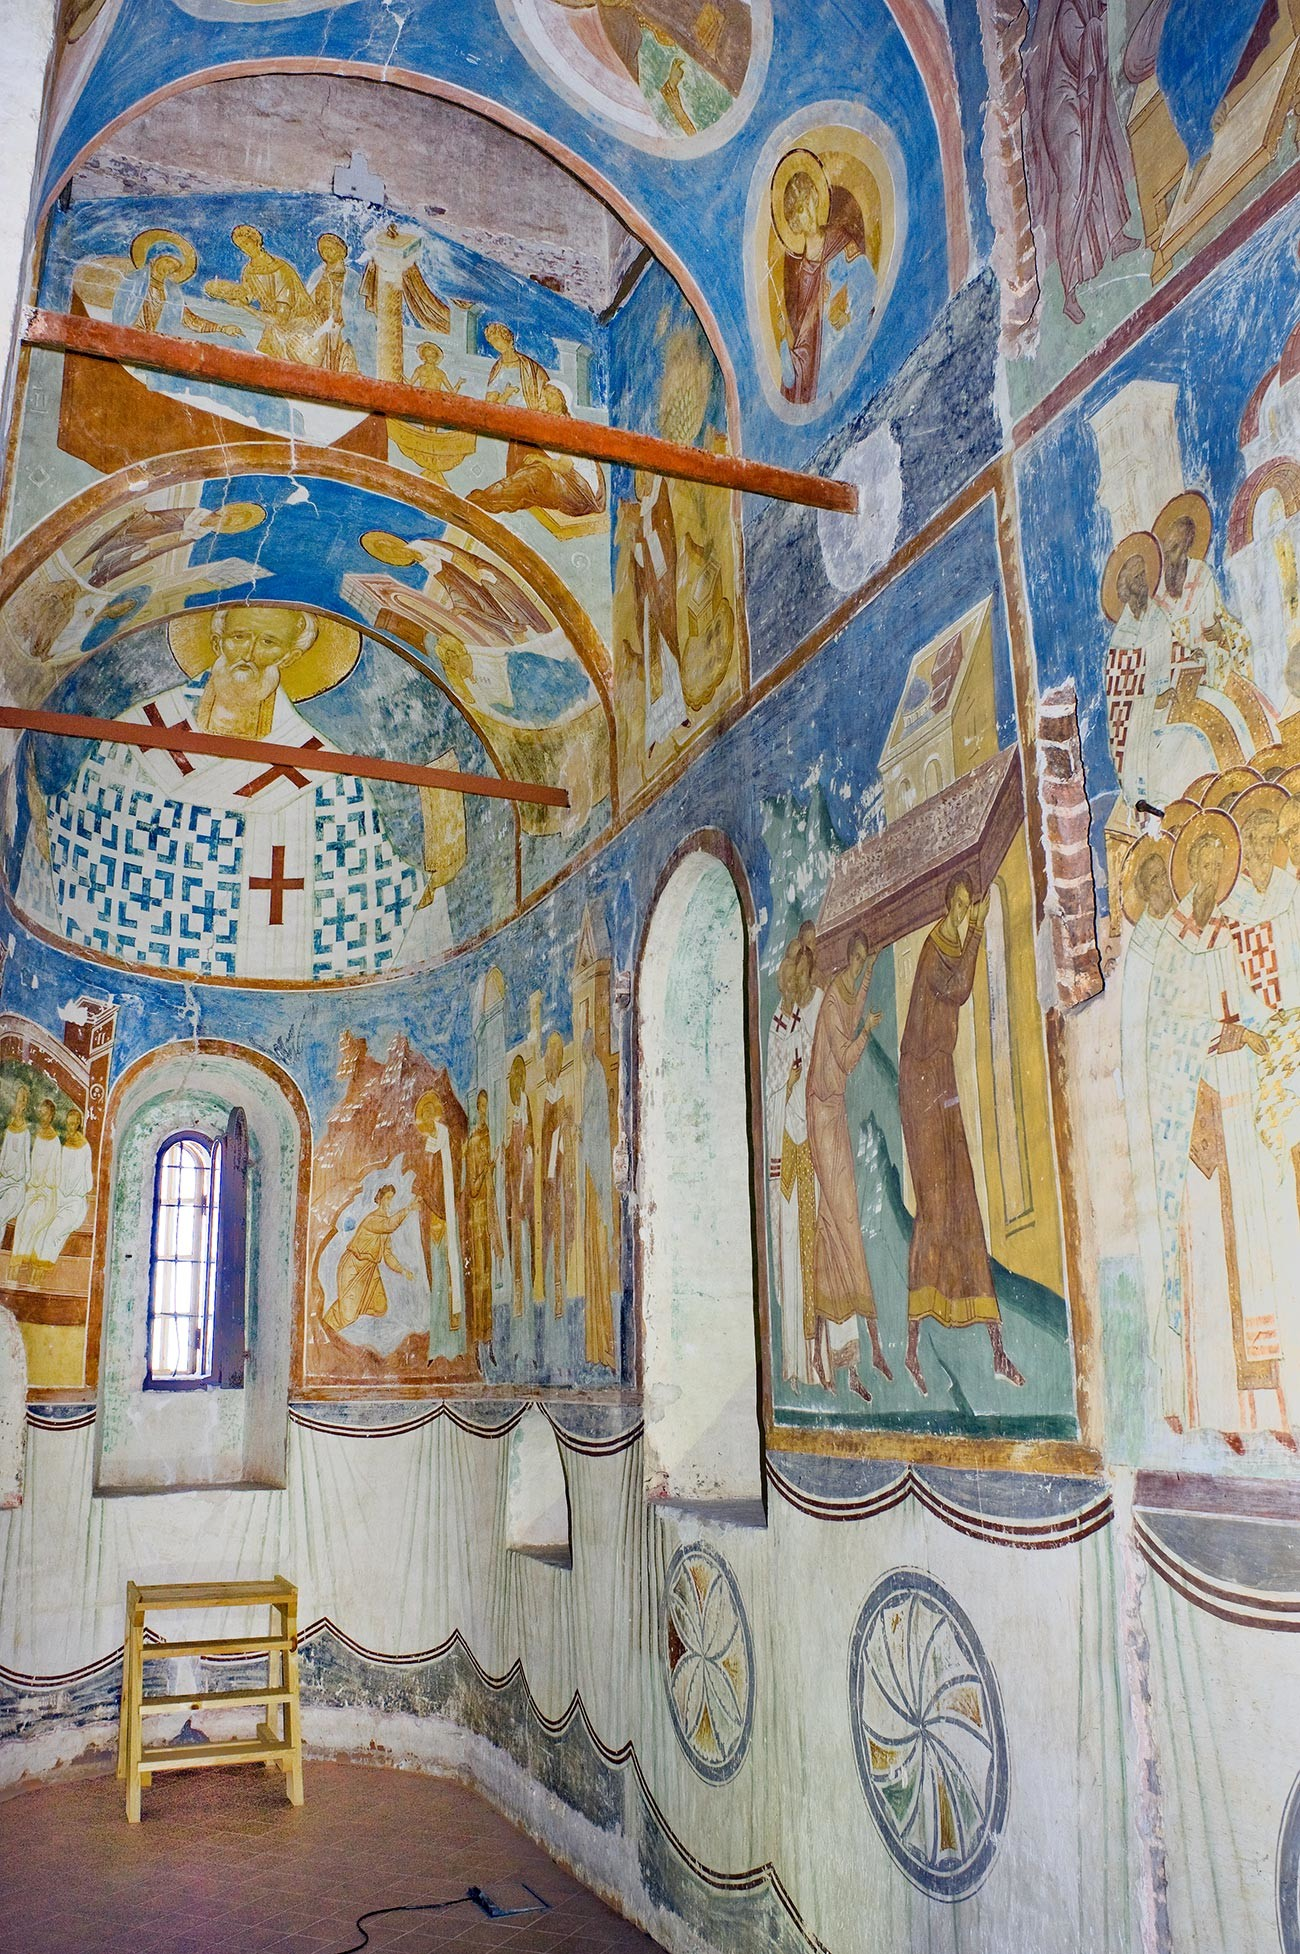 Cathedral of Nativity. South apse with frescoes of St. Nicholas. June 1, 2014